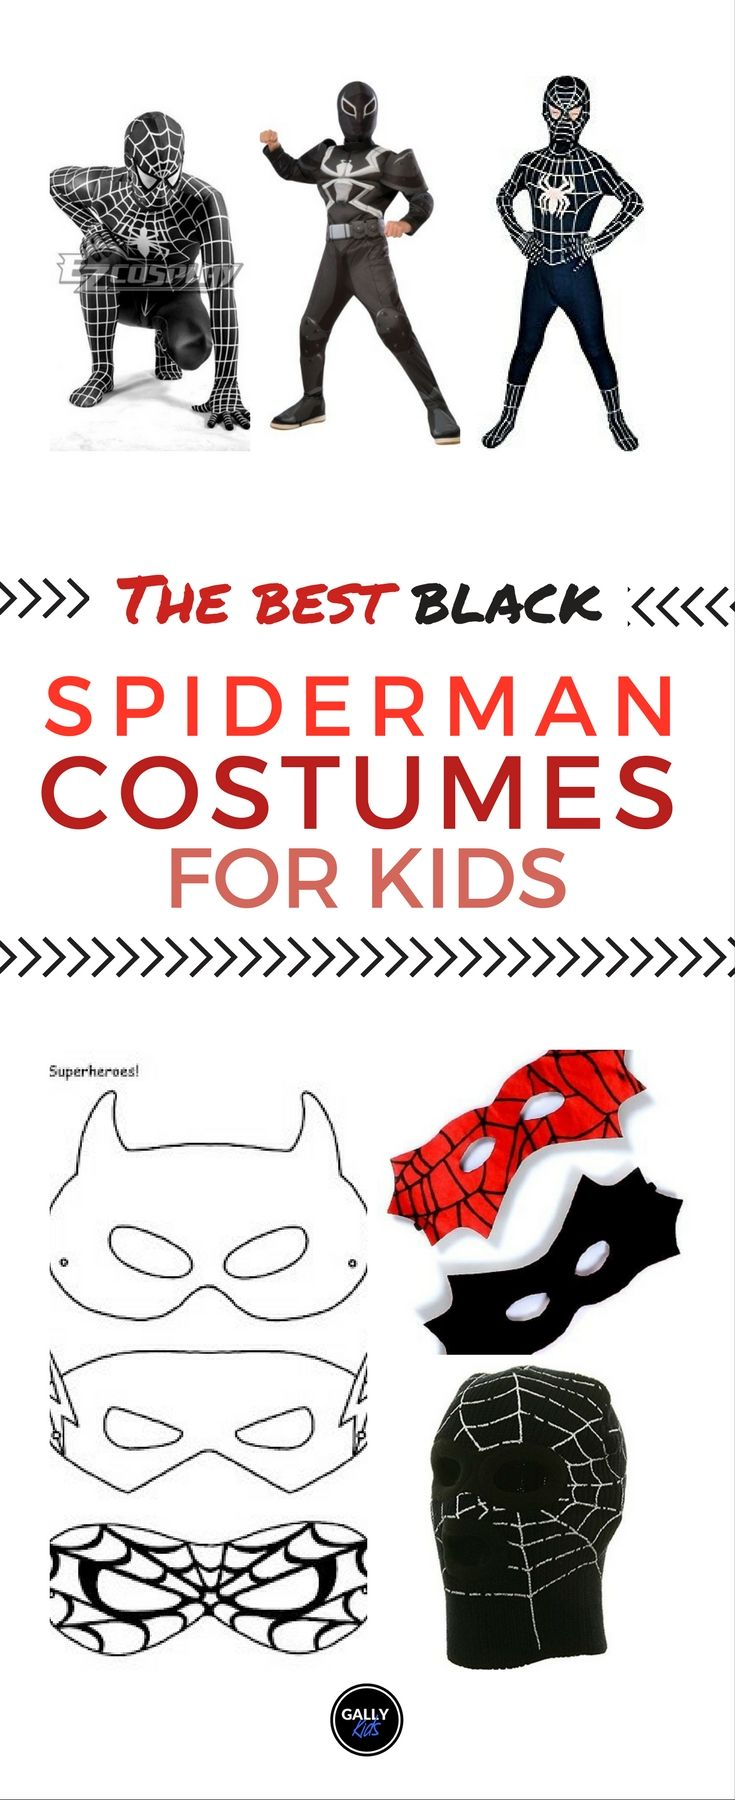 Black Spiderman costumes for kids. For the true blue spiderman fan! Be unique. Different Venom Symbiote costumes. #spidermancostume